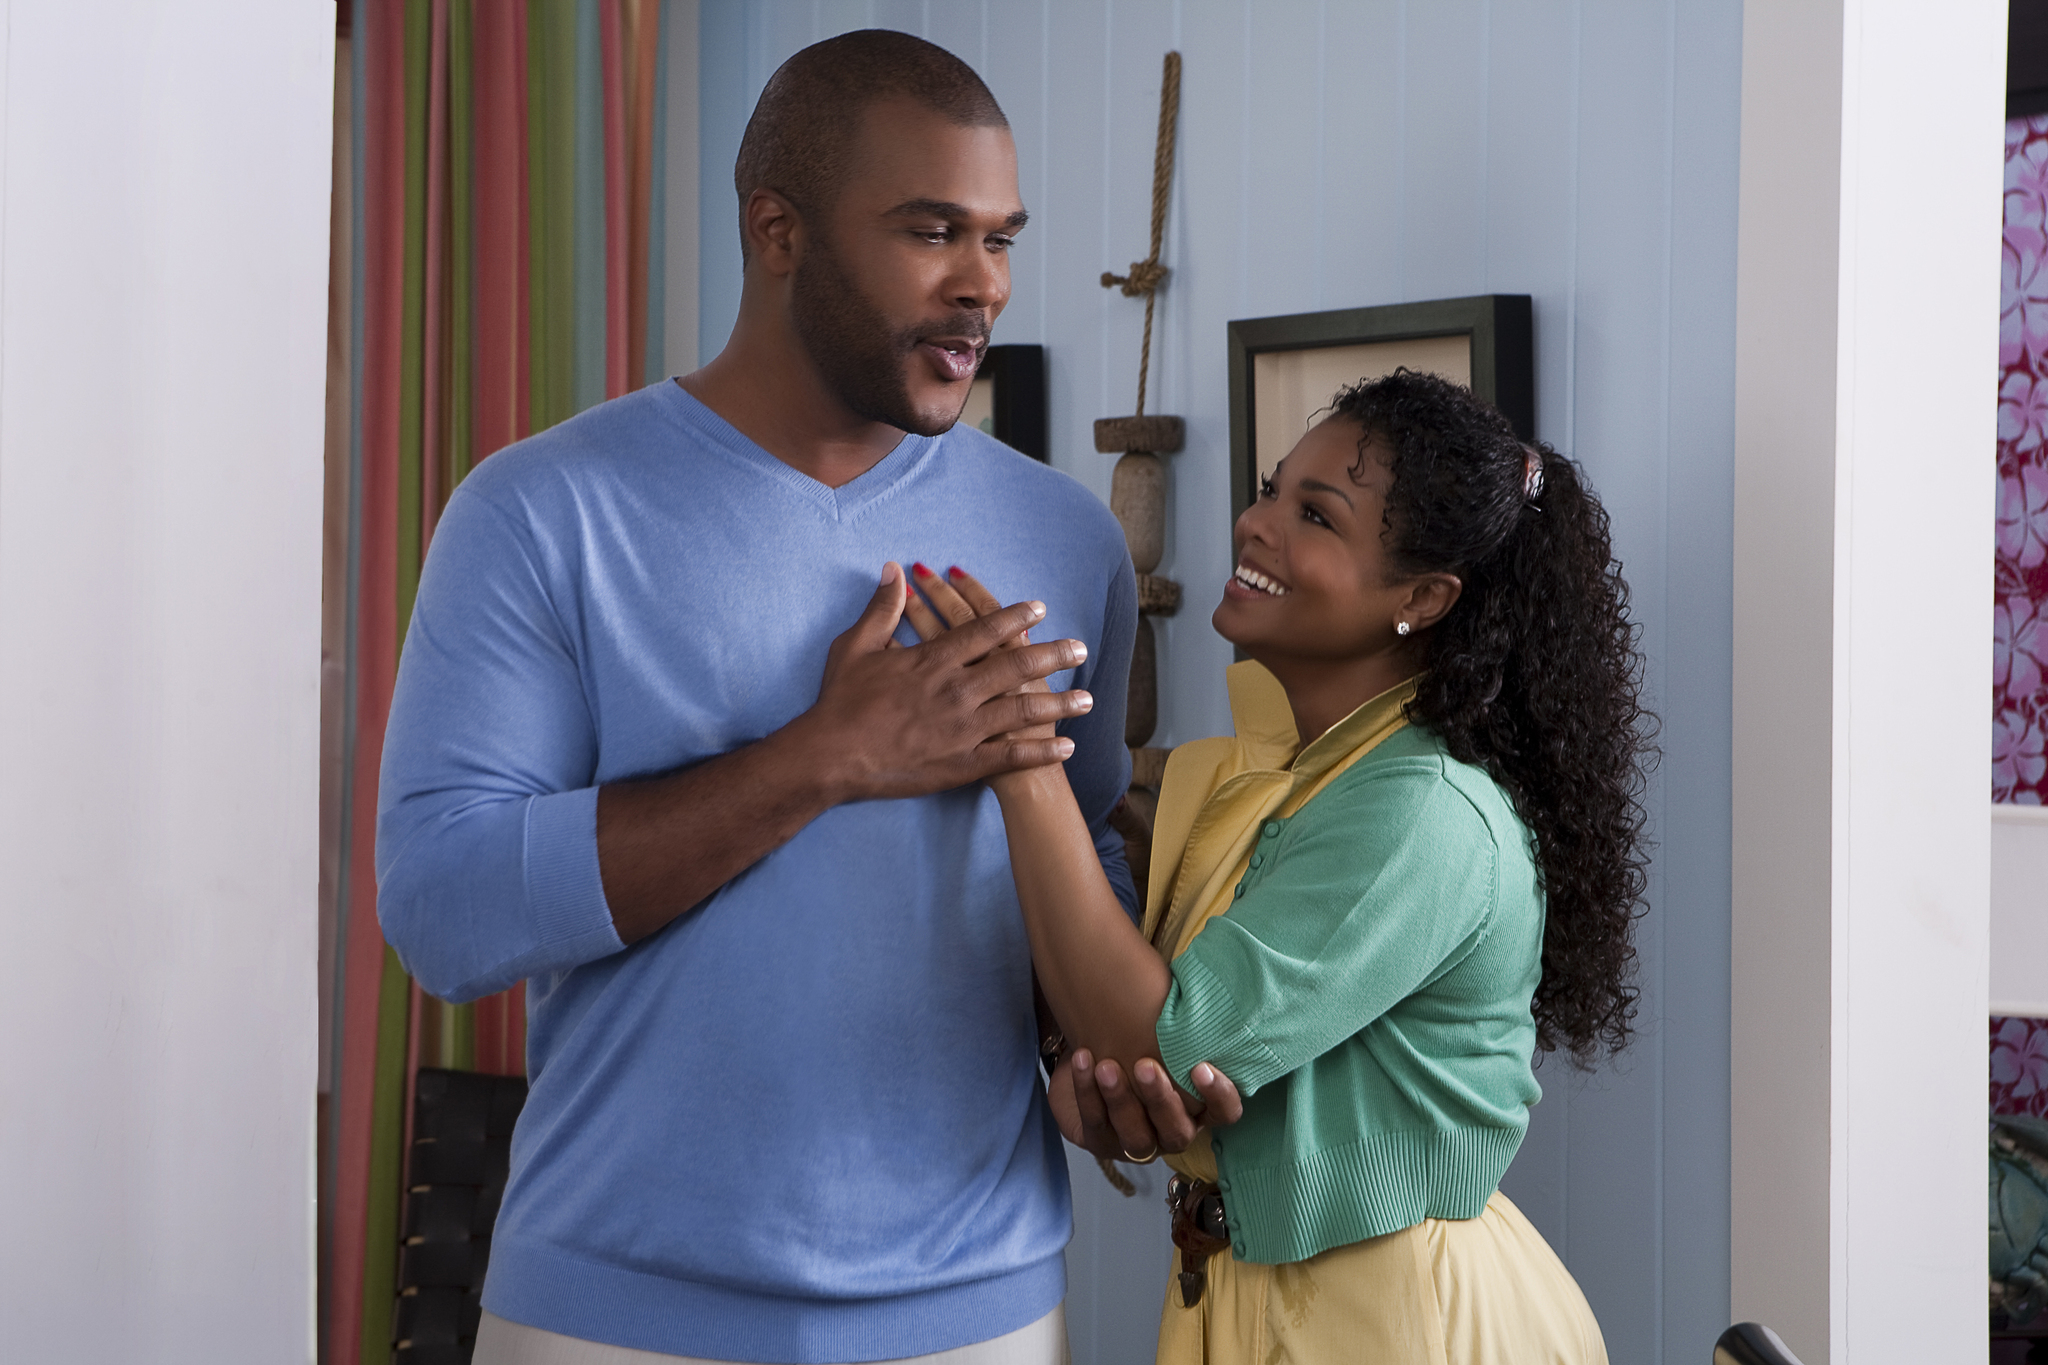 Janet Jackson and Tyler Perry in Why Did I Get Married Too? (2010)